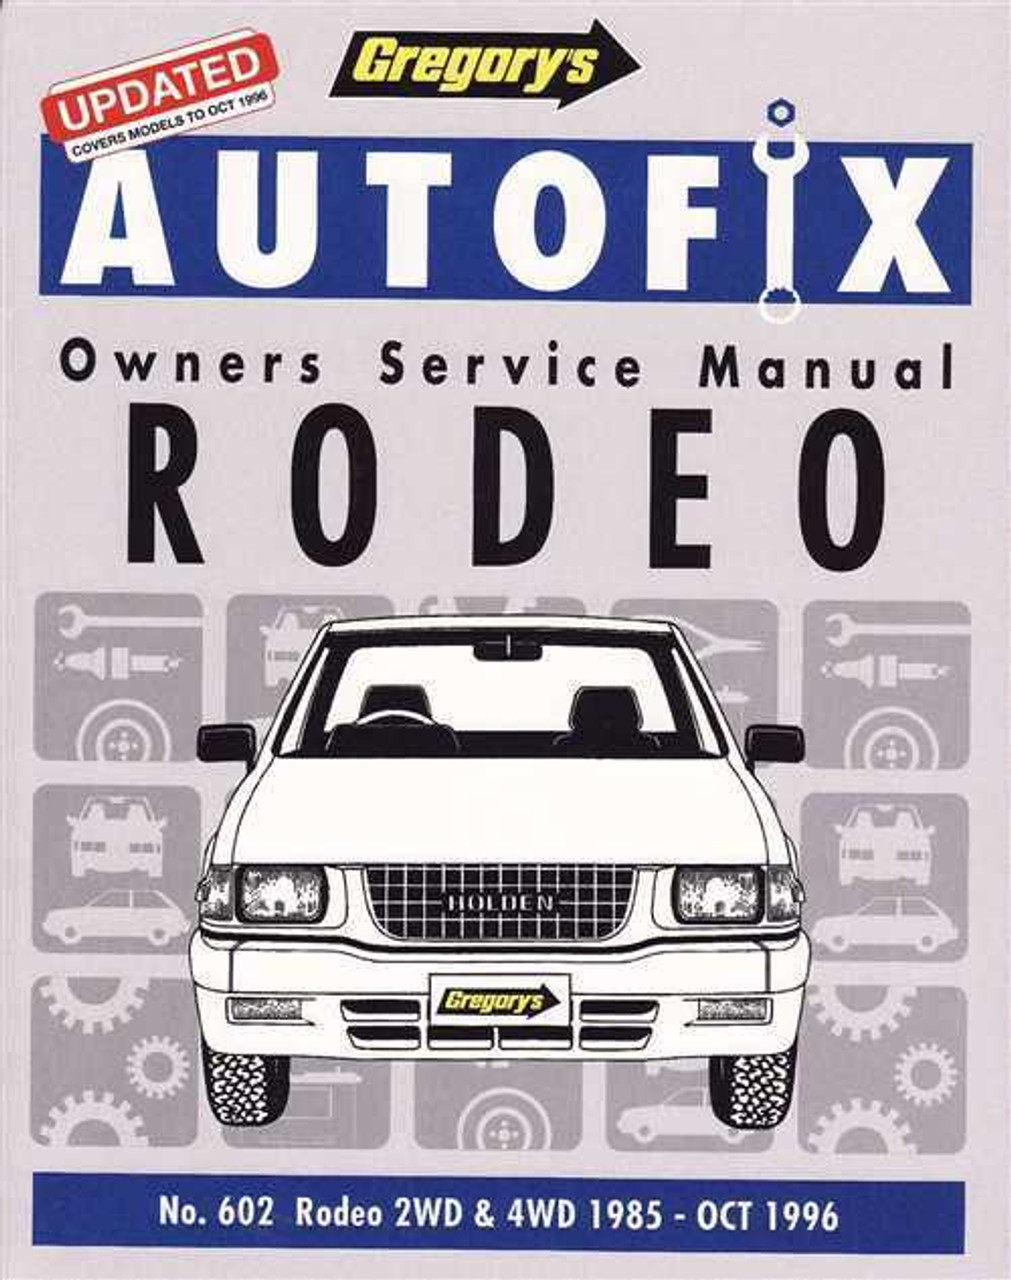 holden rodeo 2wd 4wd petrol 1985 1996 workshop manual rh automotobookshop com au isuzu rodeo repair manual pdf isuzu rodeo service manual